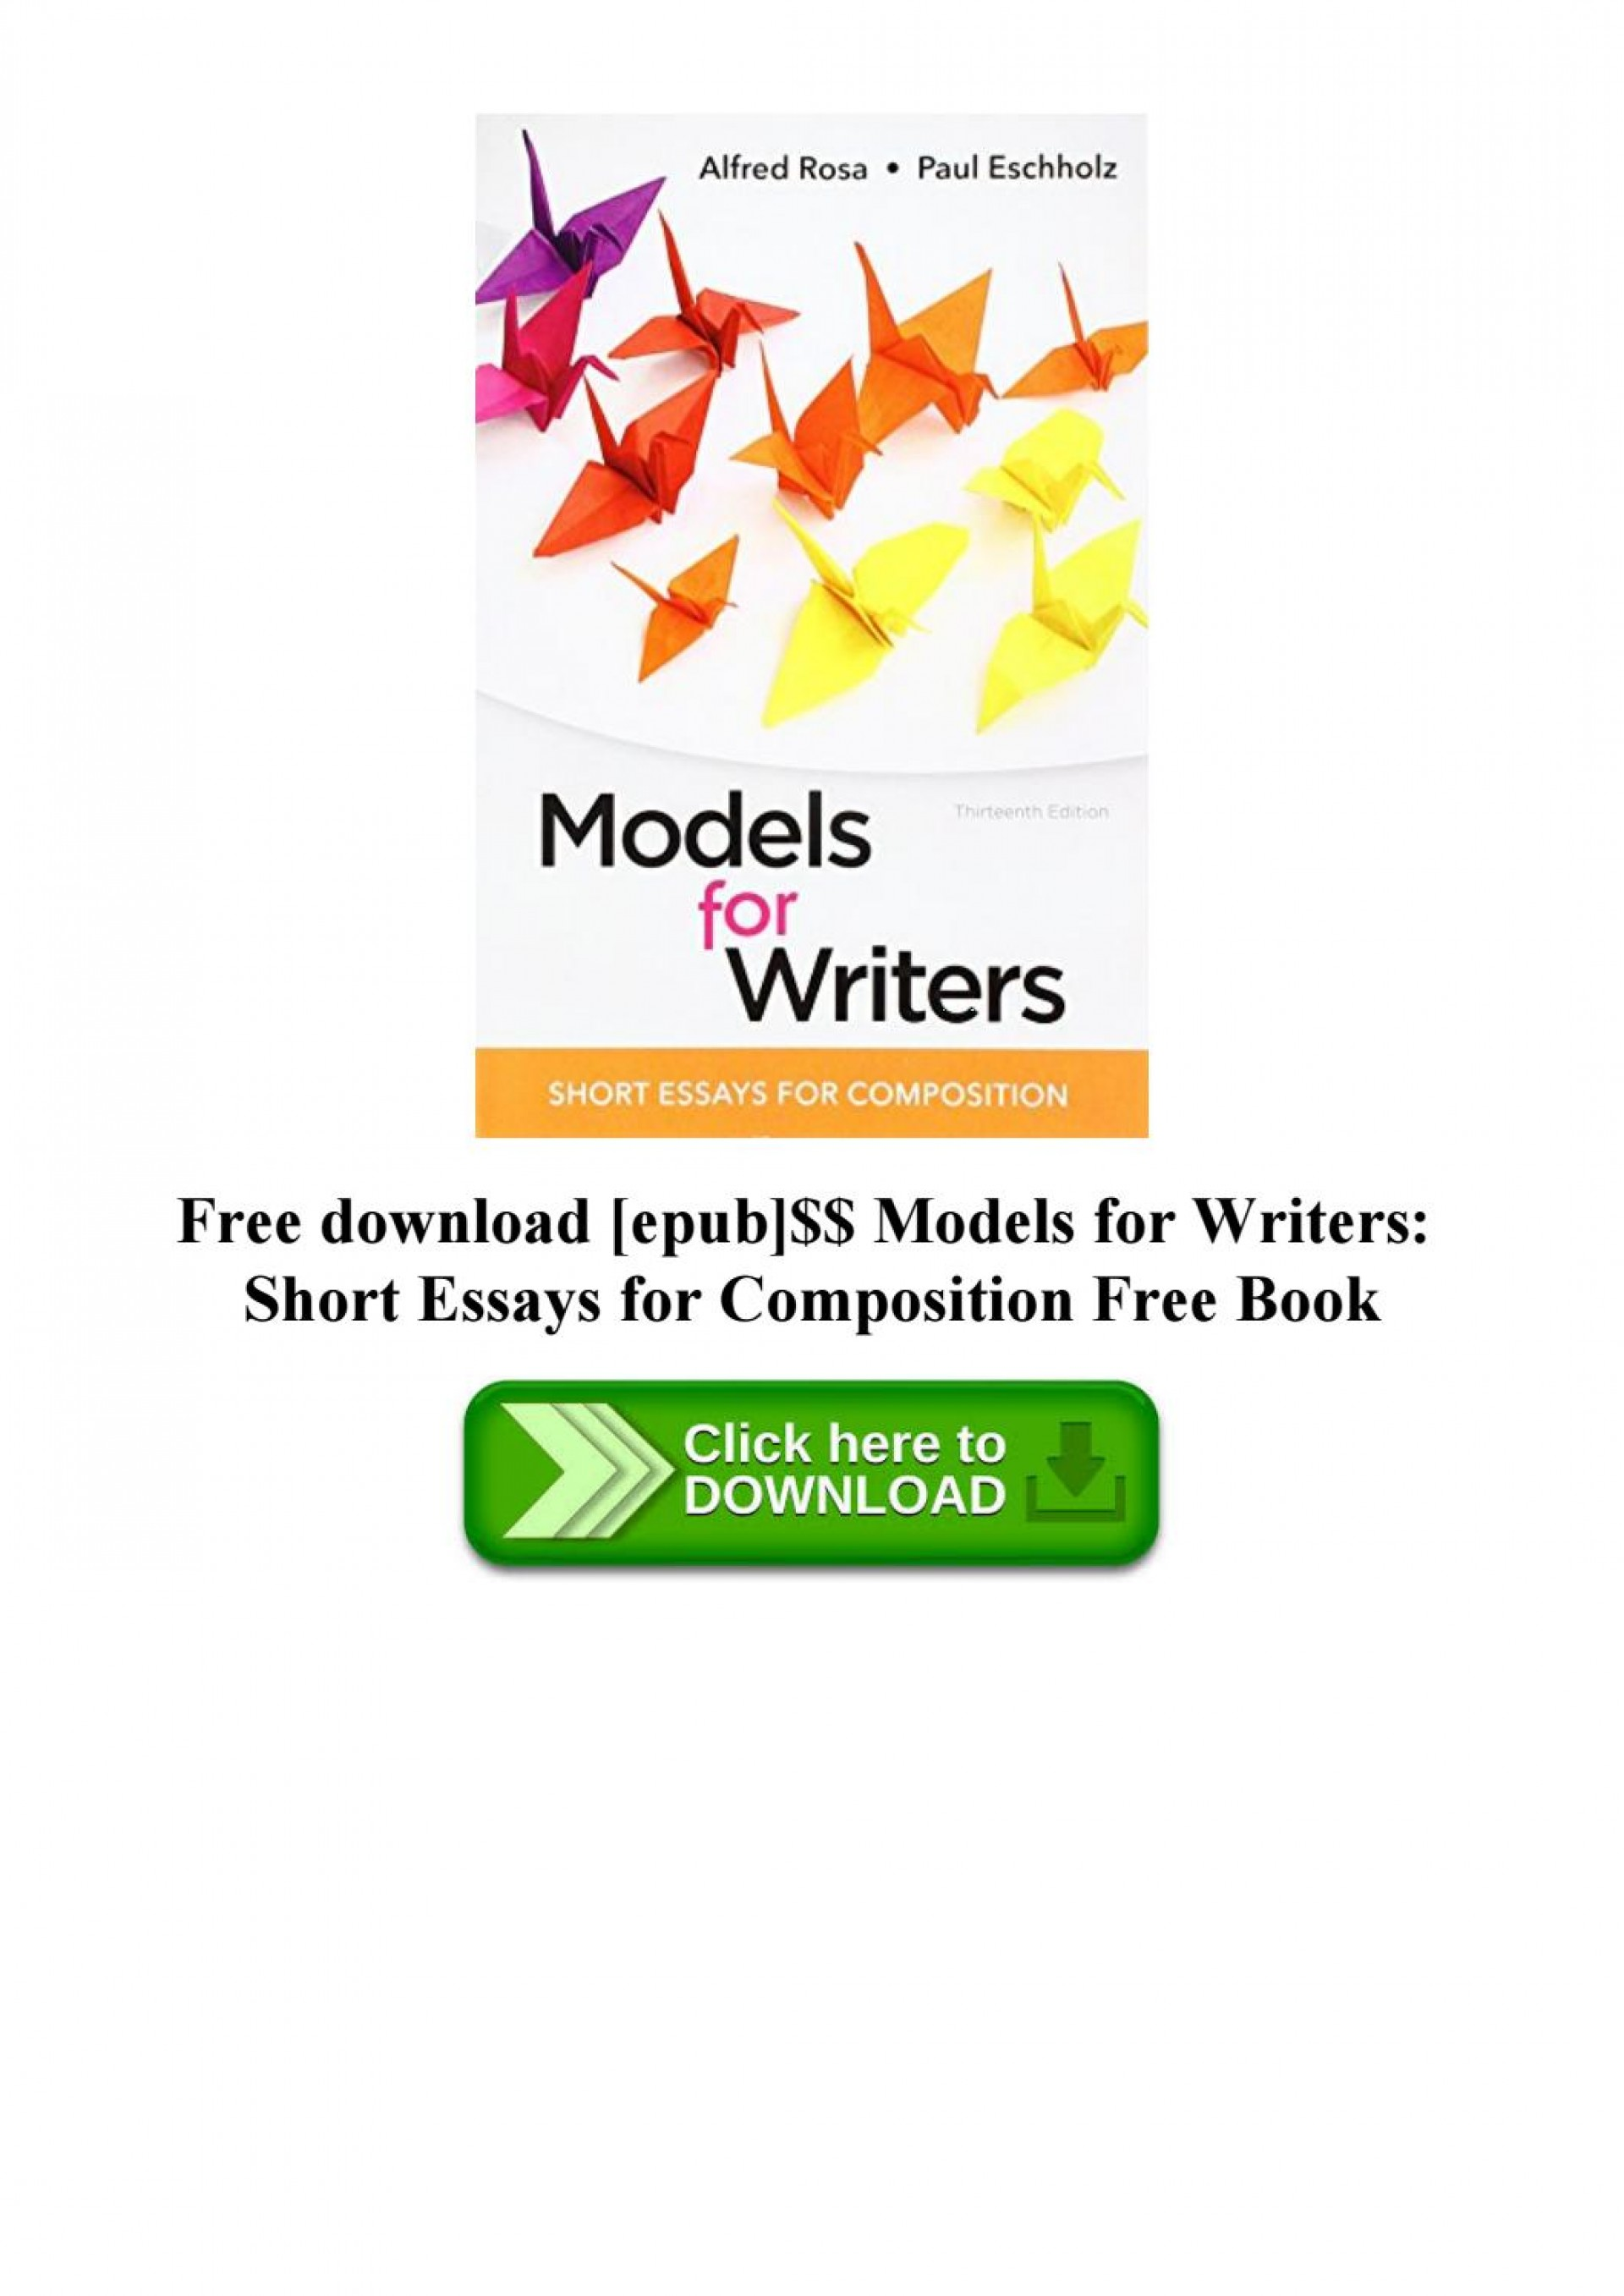 017 Page 1 Essay Example Models For Writers Short Essays Singular Composition 12th Edition 13th Pdf 1920